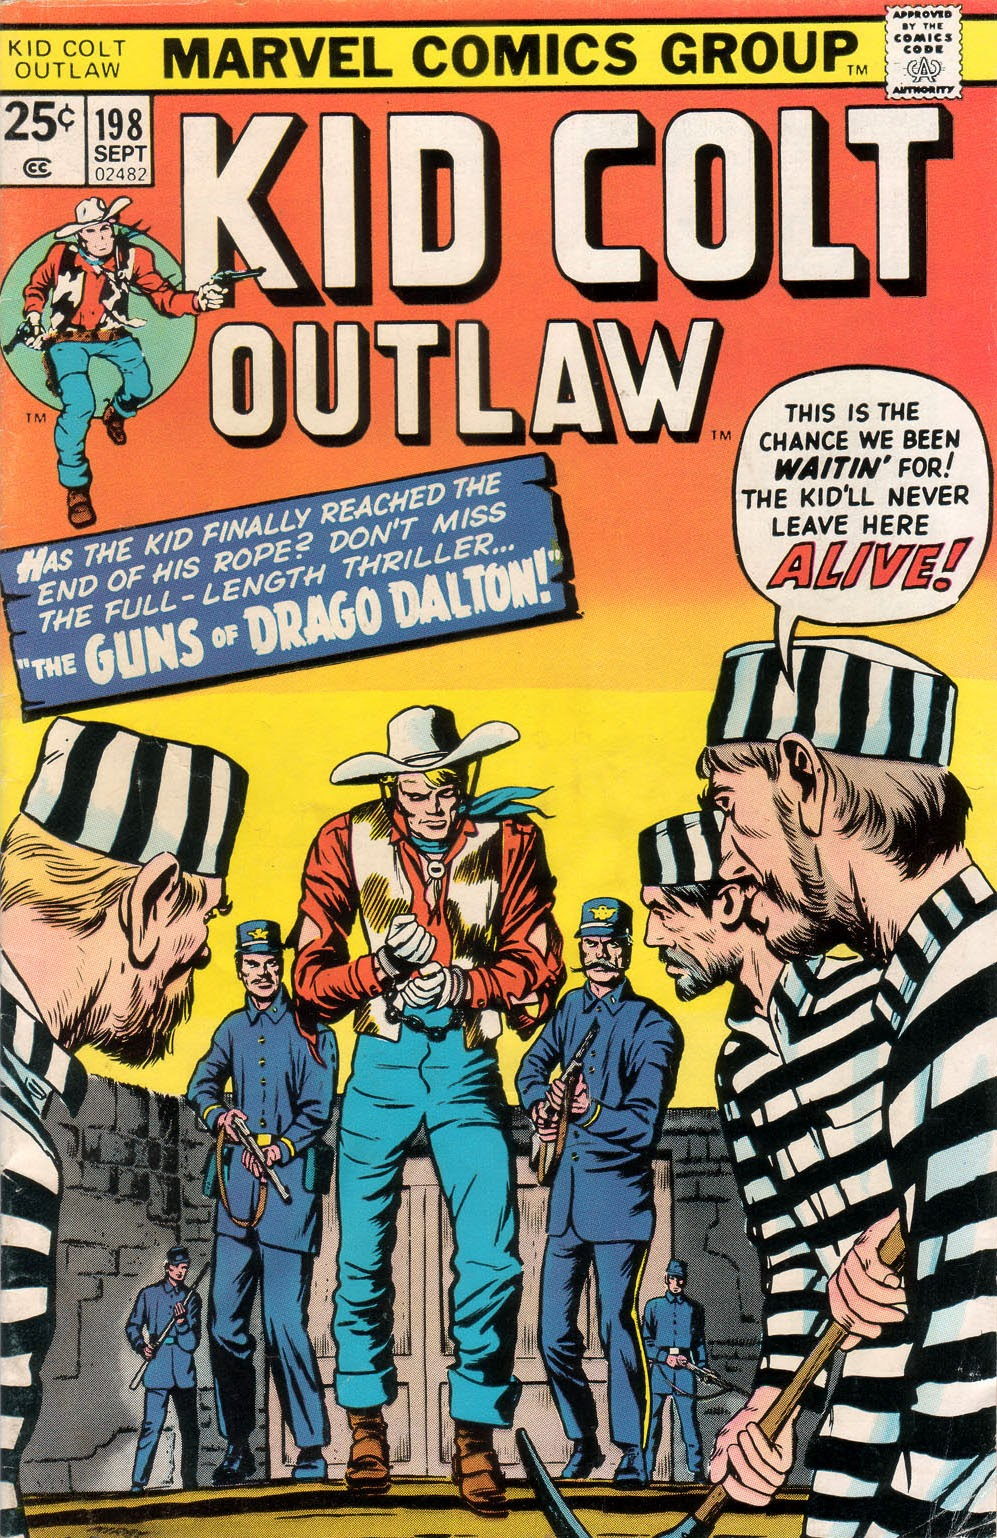 Kid Colt Outlaw issue 198 - Page 1